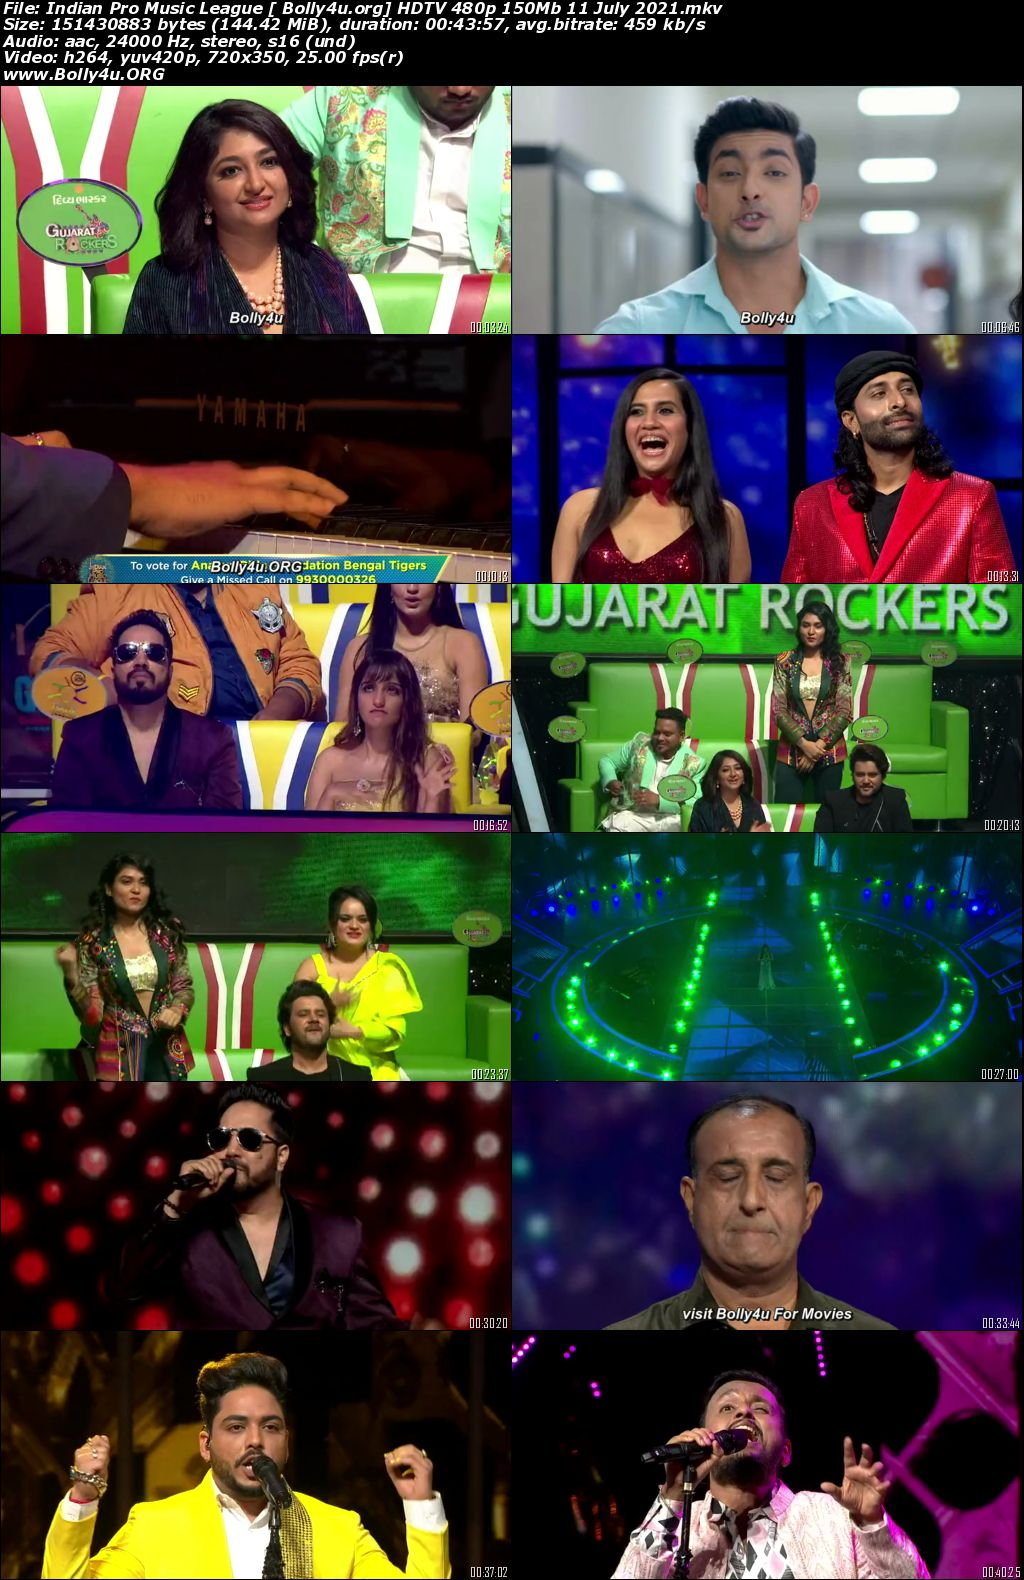 Indian Pro Music League HDTV 480p 150Mb 11 July 2021 Download